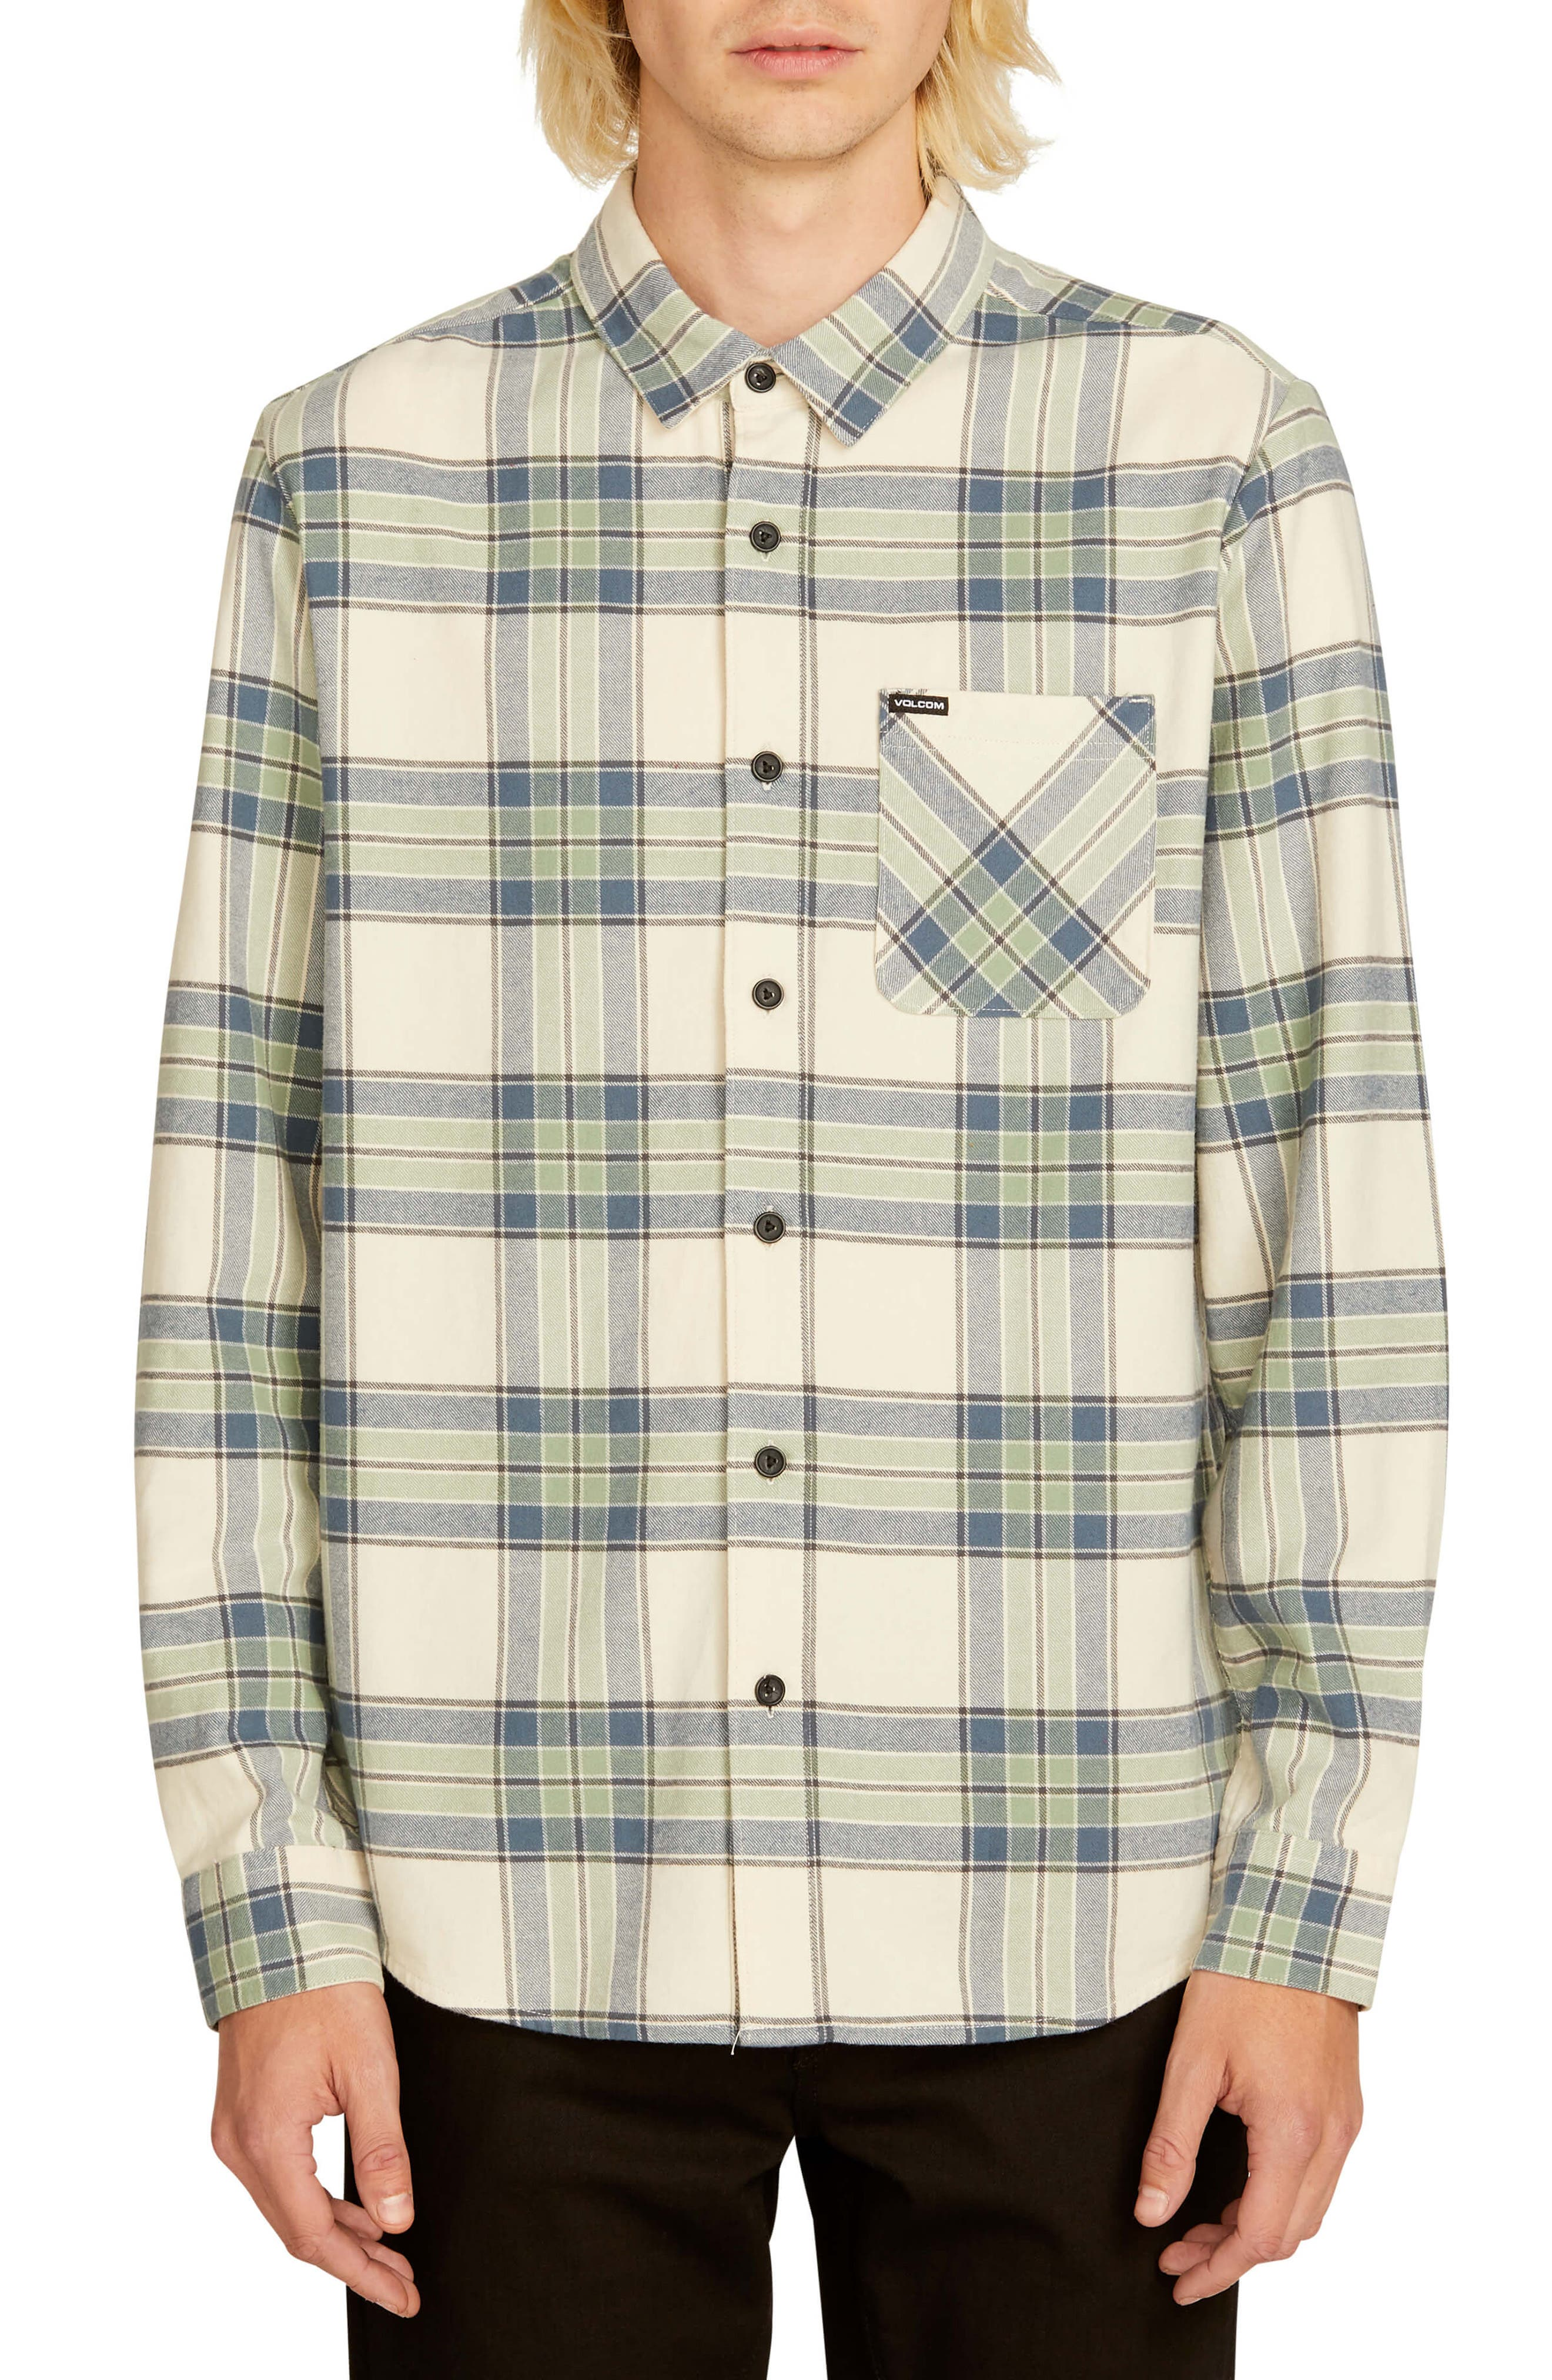 Volcom Caden Plaid Flannel Shirt, Ivory